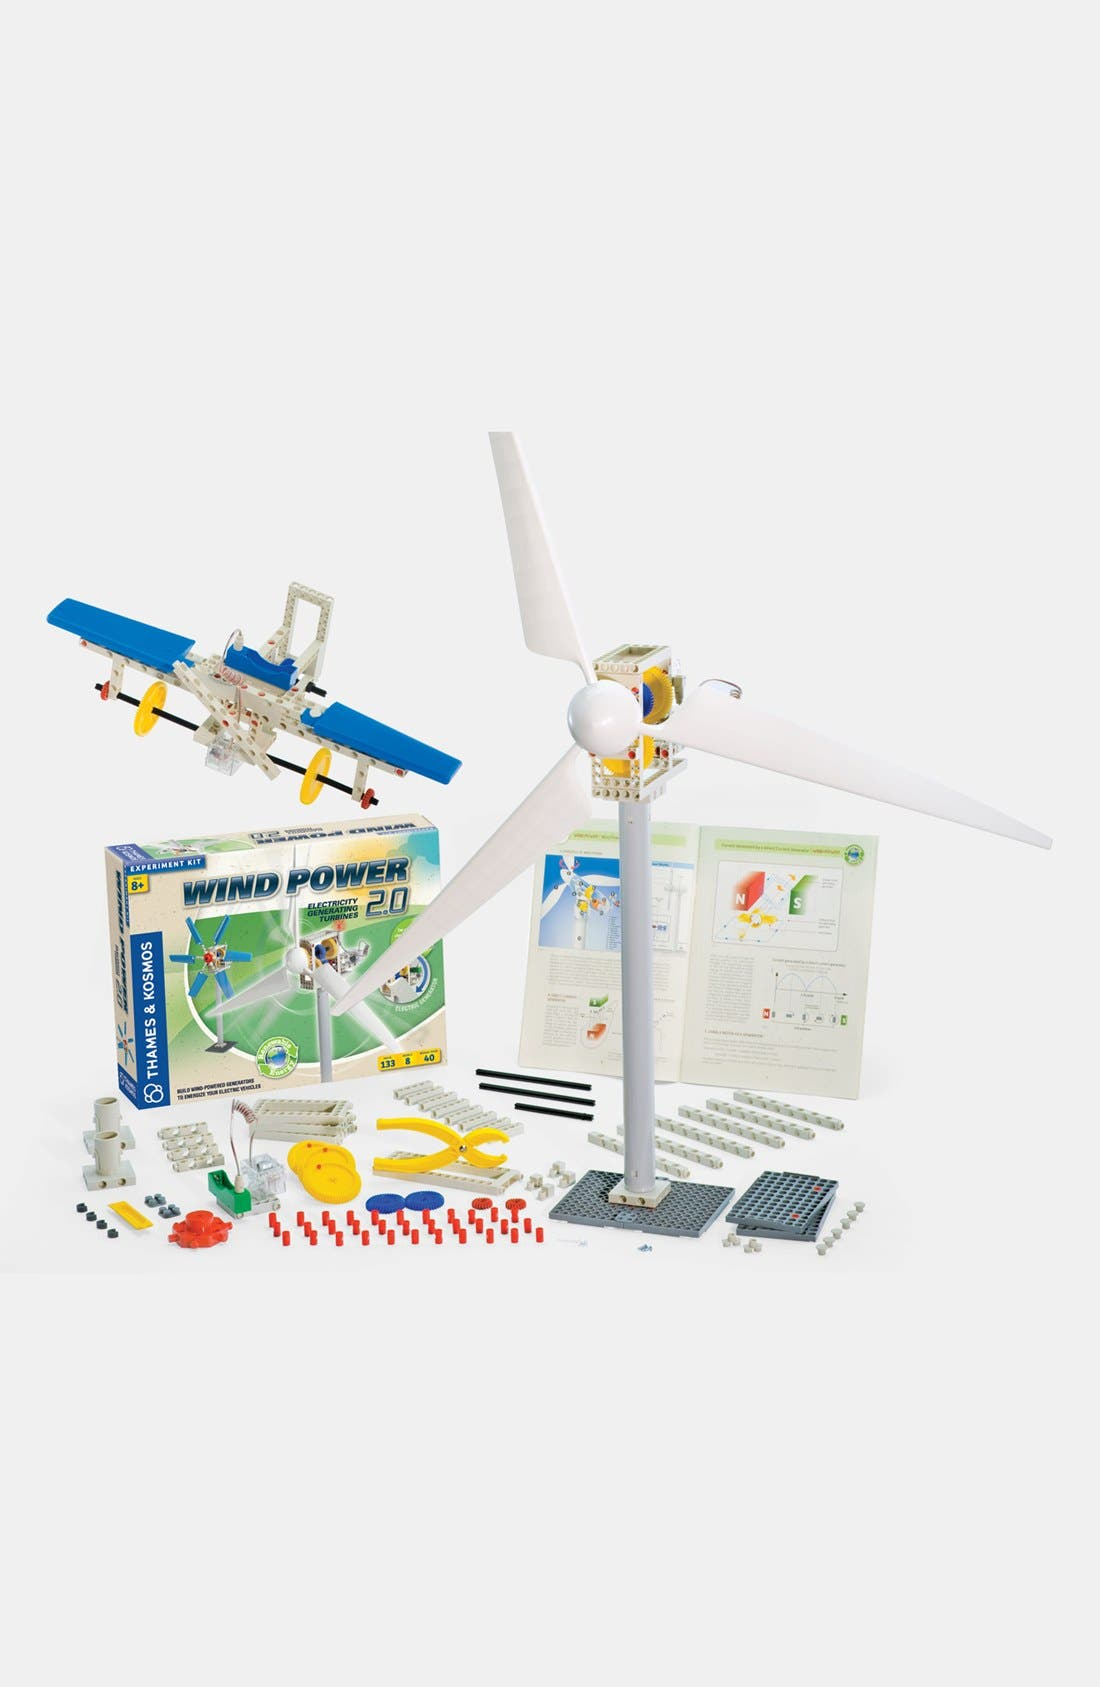 Main Image - Thames & Kosmos 'Wind Power 2.0' Building Set